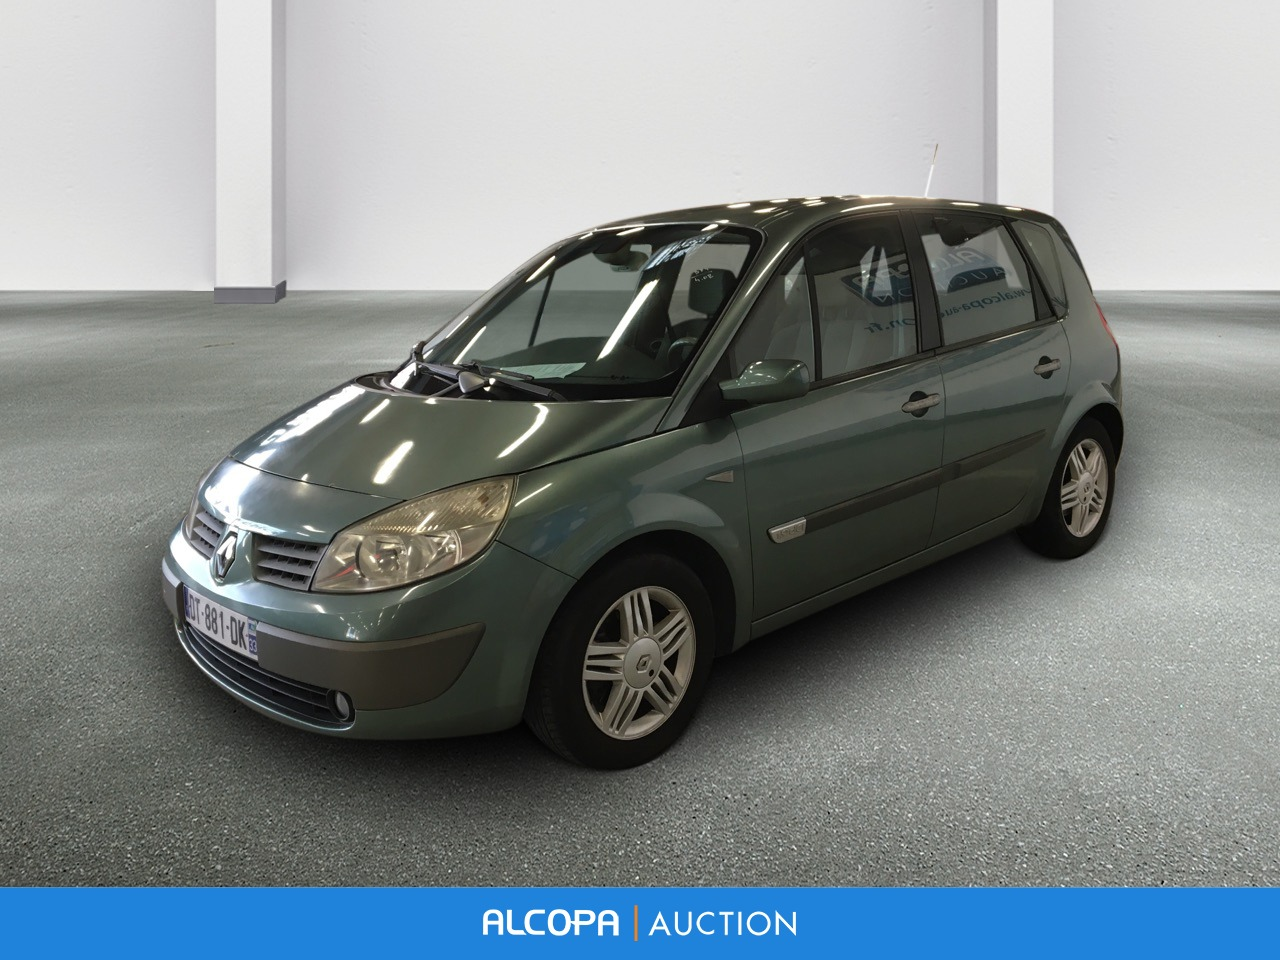 renault scenic ii scenic 1 9 dci 120 luxe dynamique alcopa auction. Black Bedroom Furniture Sets. Home Design Ideas